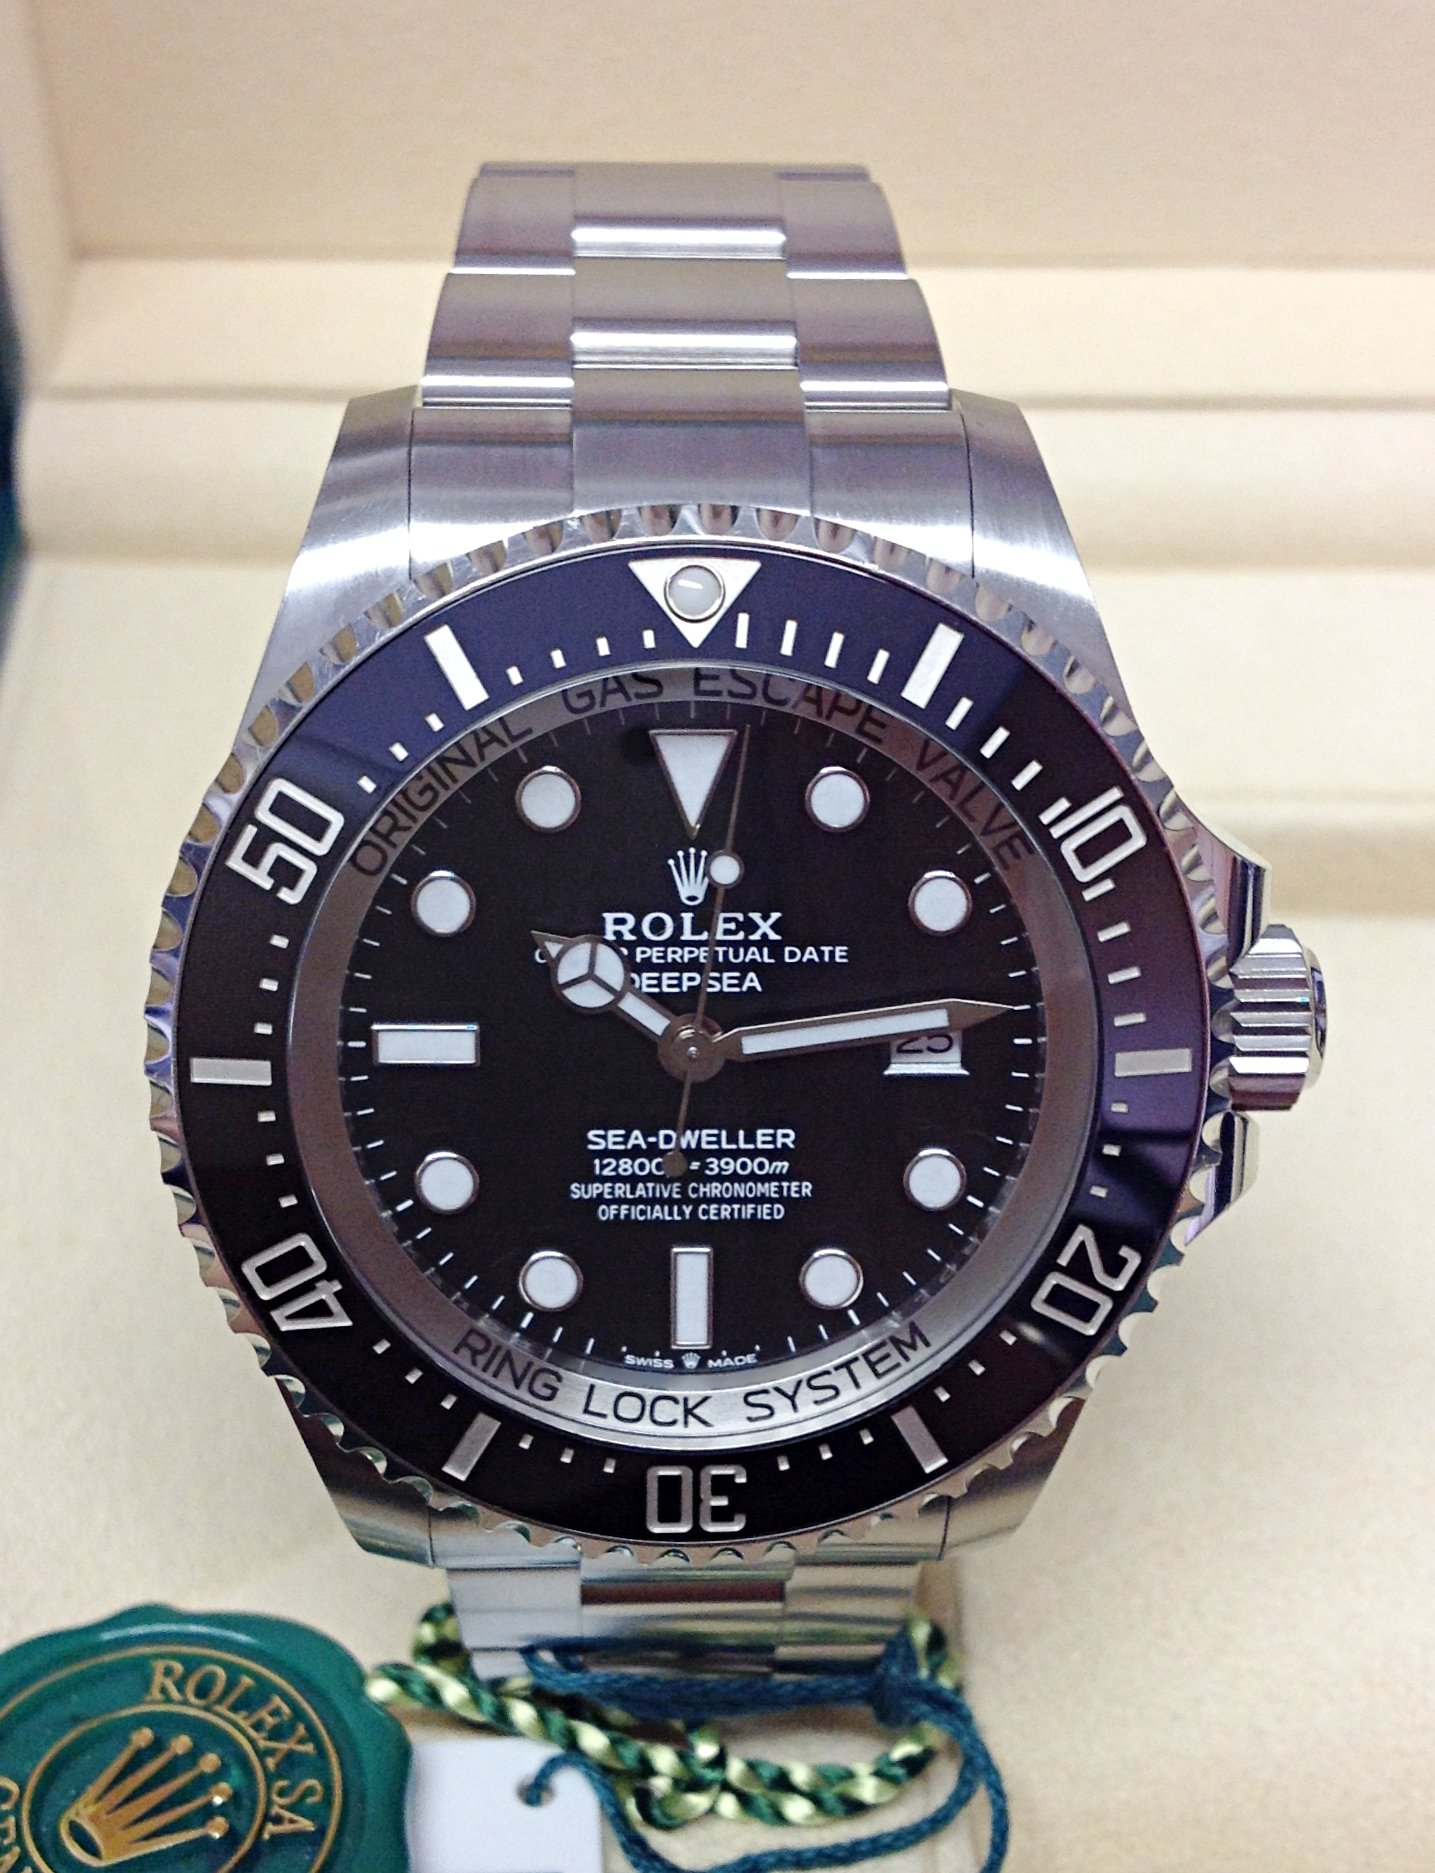 Rolex Deepsea Sea-Dweller 126660 Black Dial